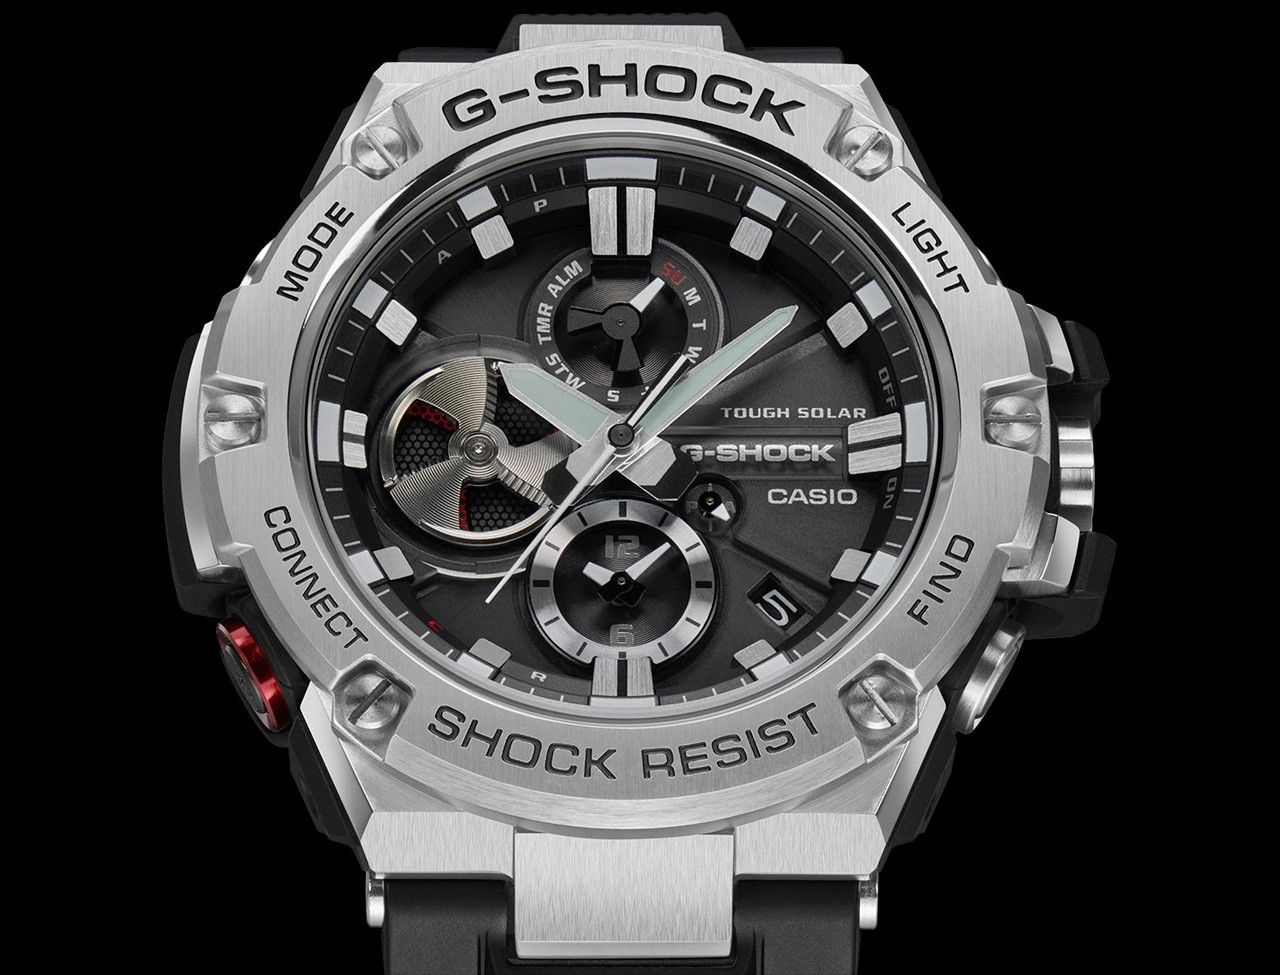 of a own men luminescent and the that feature range best watches tool in gear tec where tough for ohio dial on lum material proprietary its designs based assembles company is field patrol